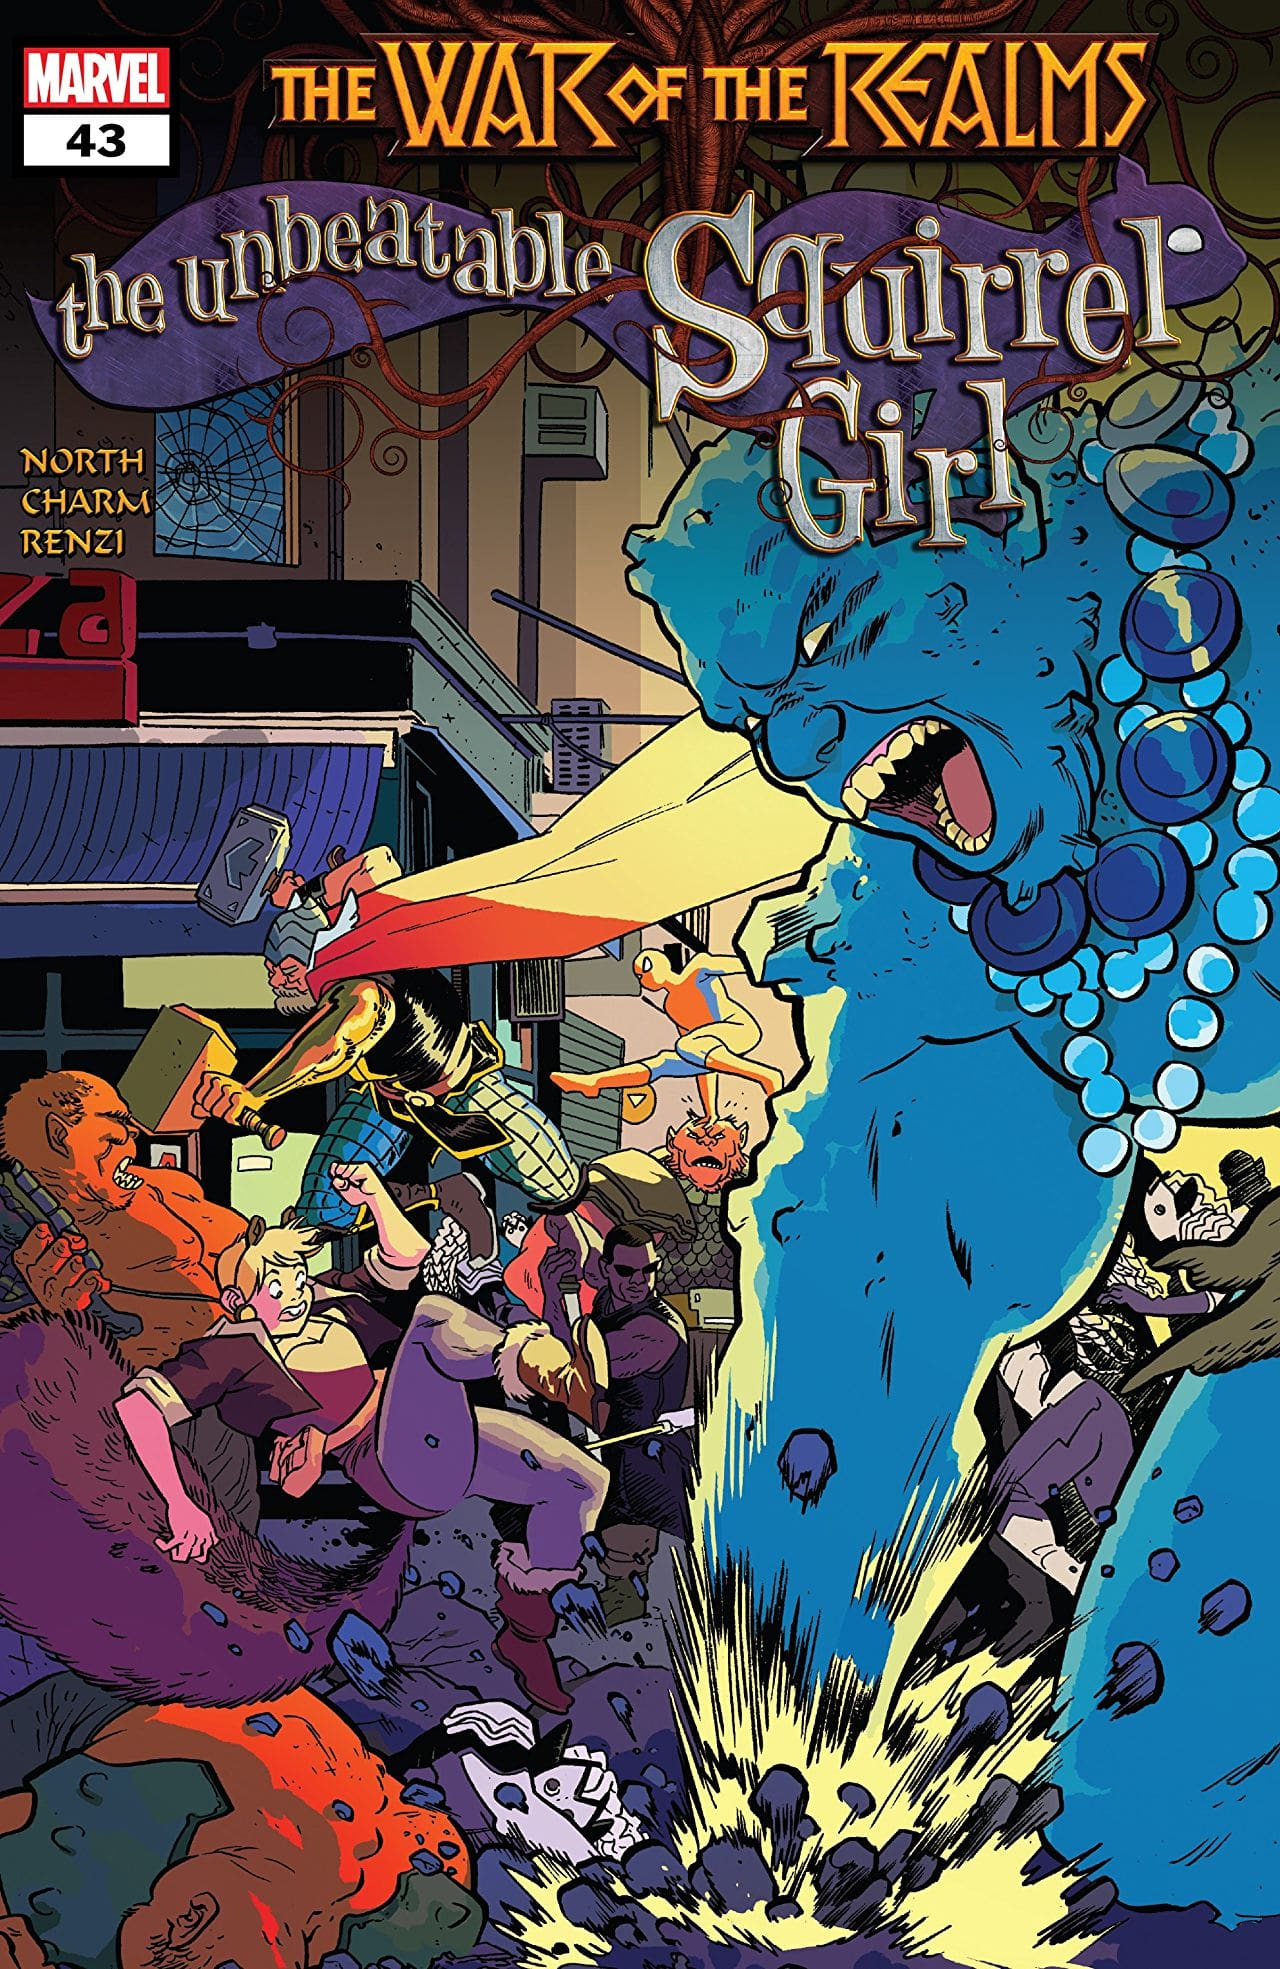 The Unbeatable Squirrel Girl #43 review: New event, who dis?